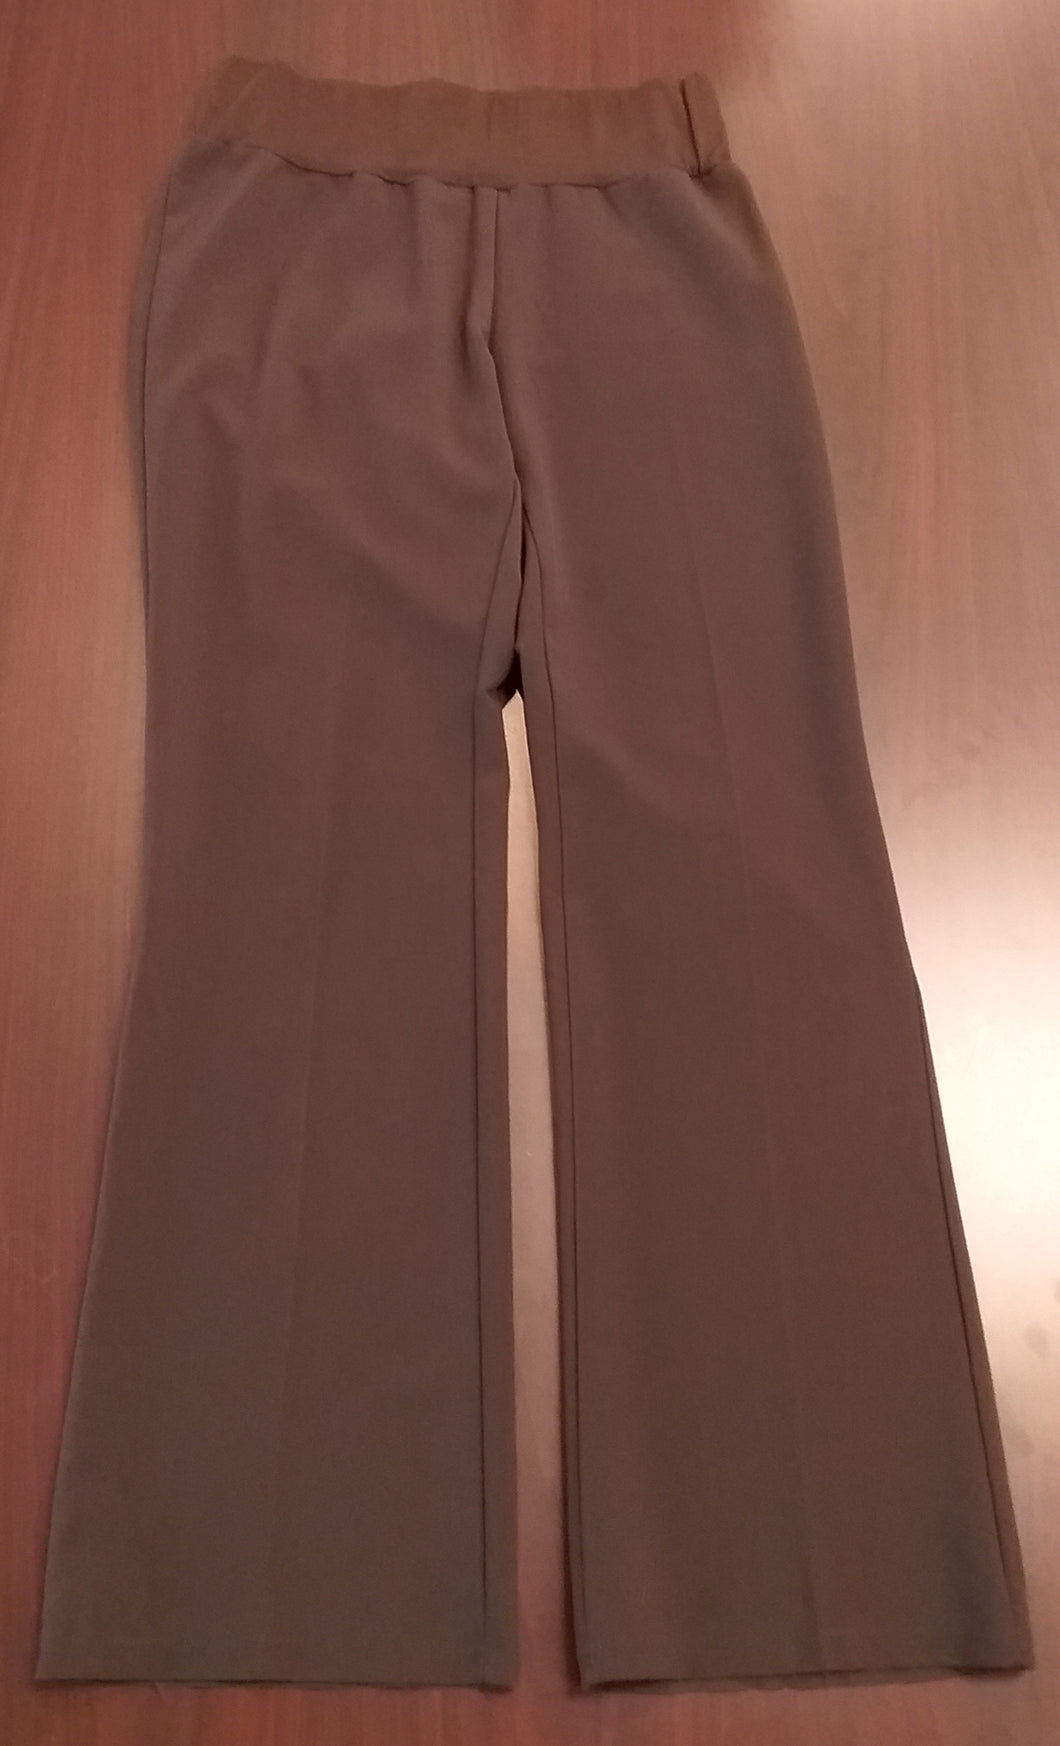 Medium Under Belly Panel Brown Maternity Pants